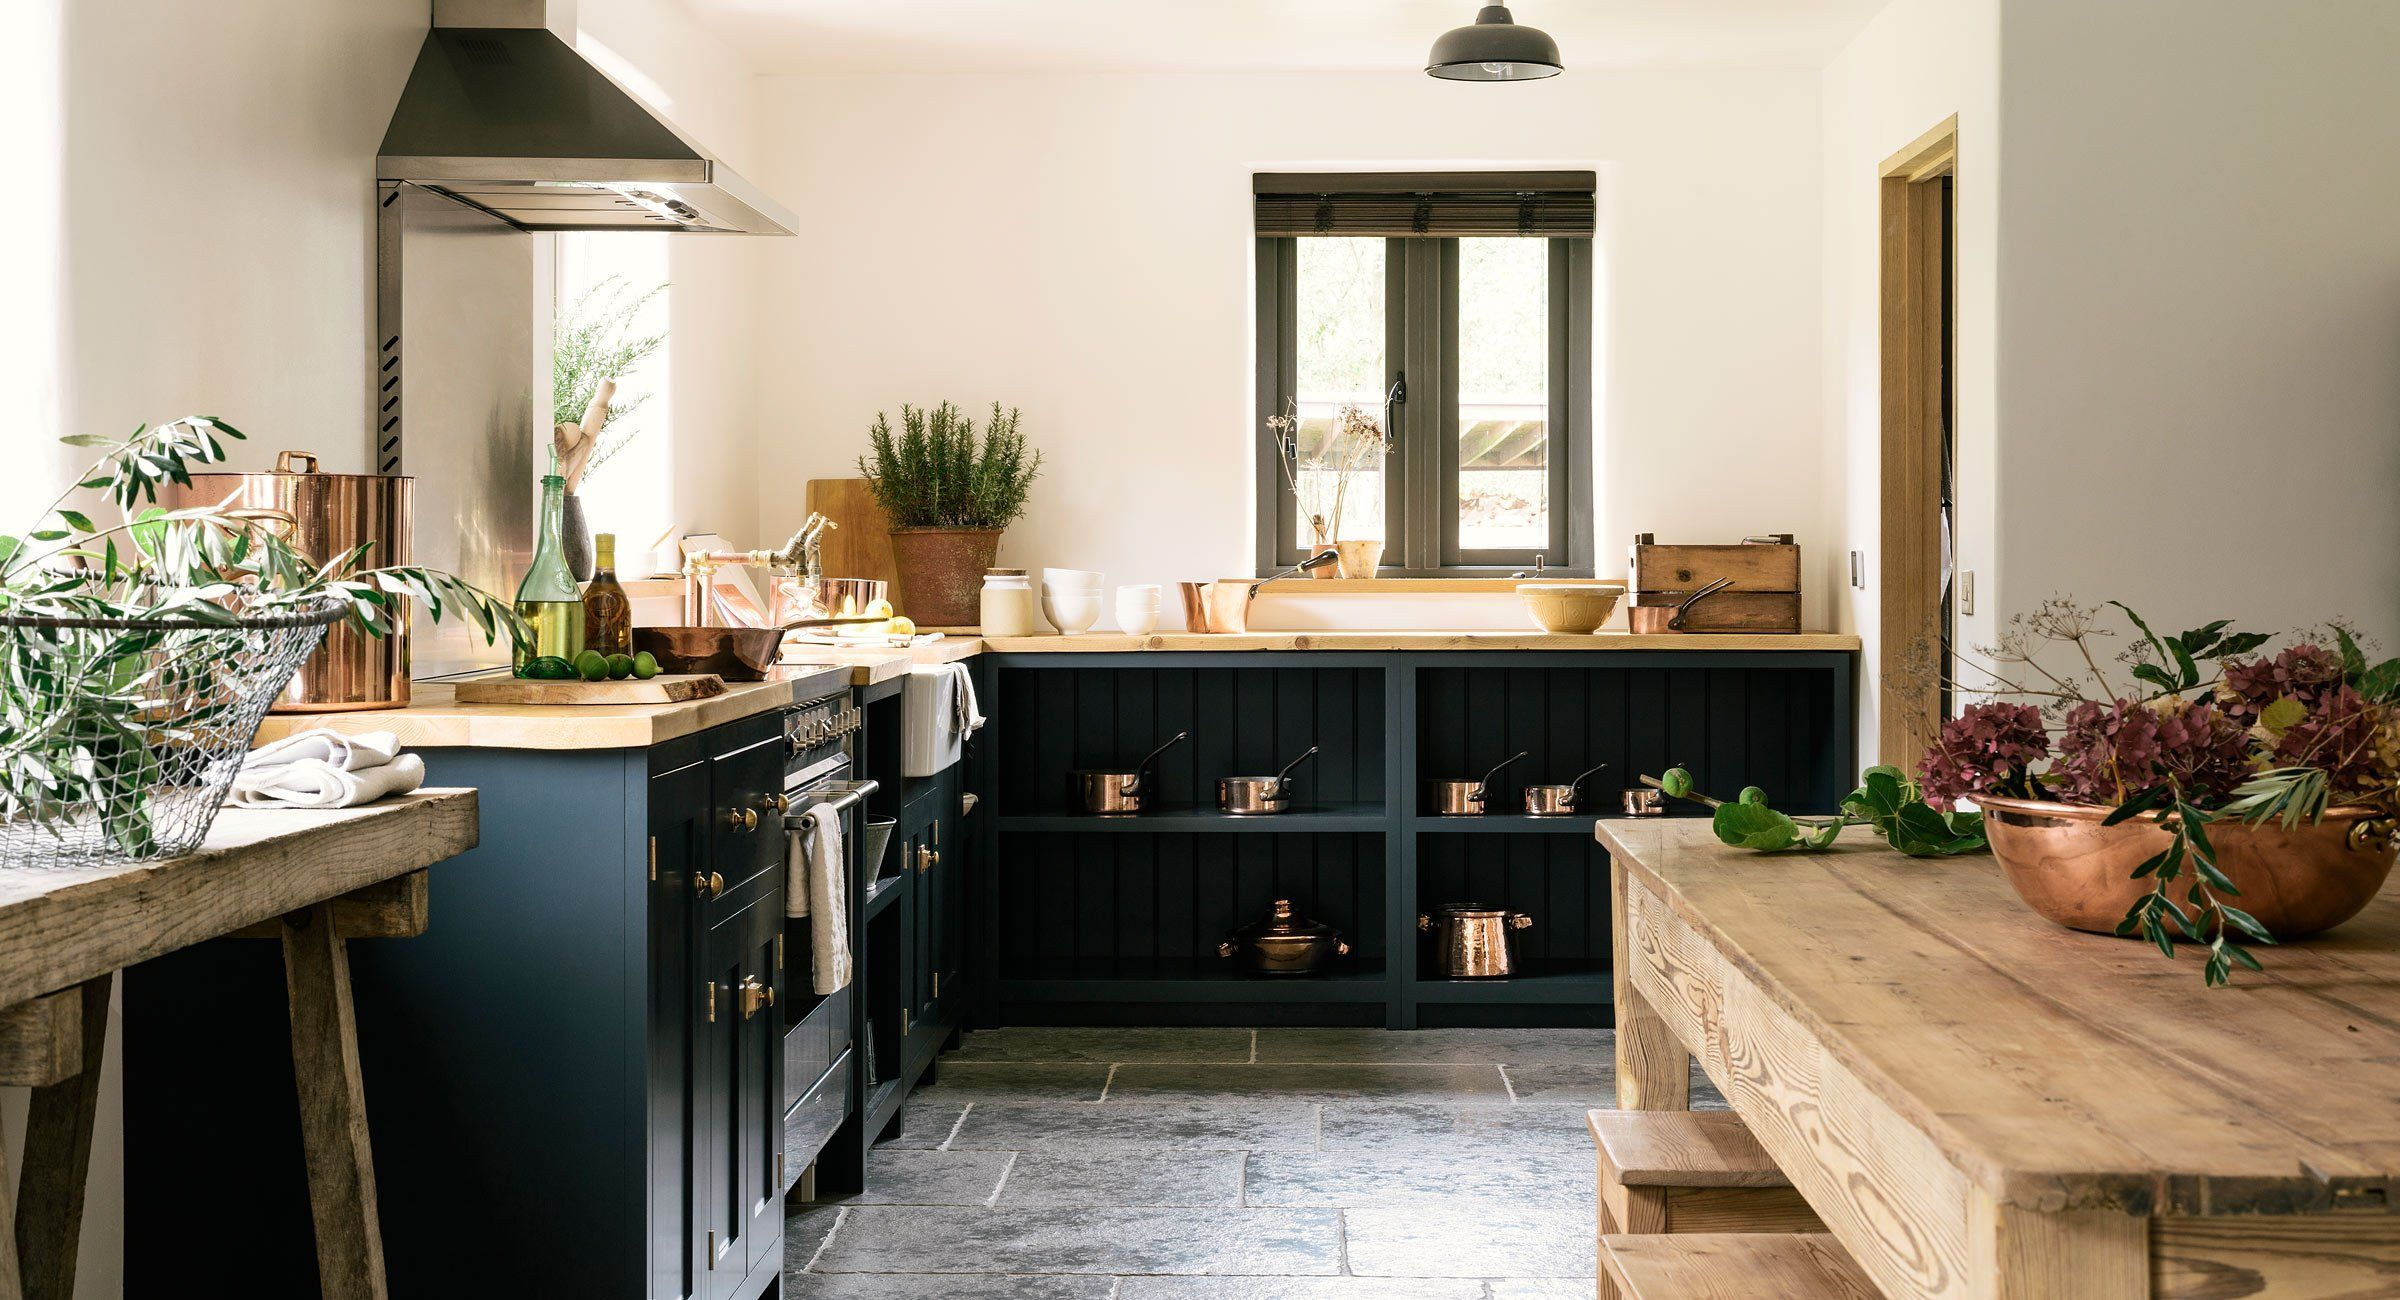 The Leicestershire Kitchen in the Woods | deVOL Kitchens ...